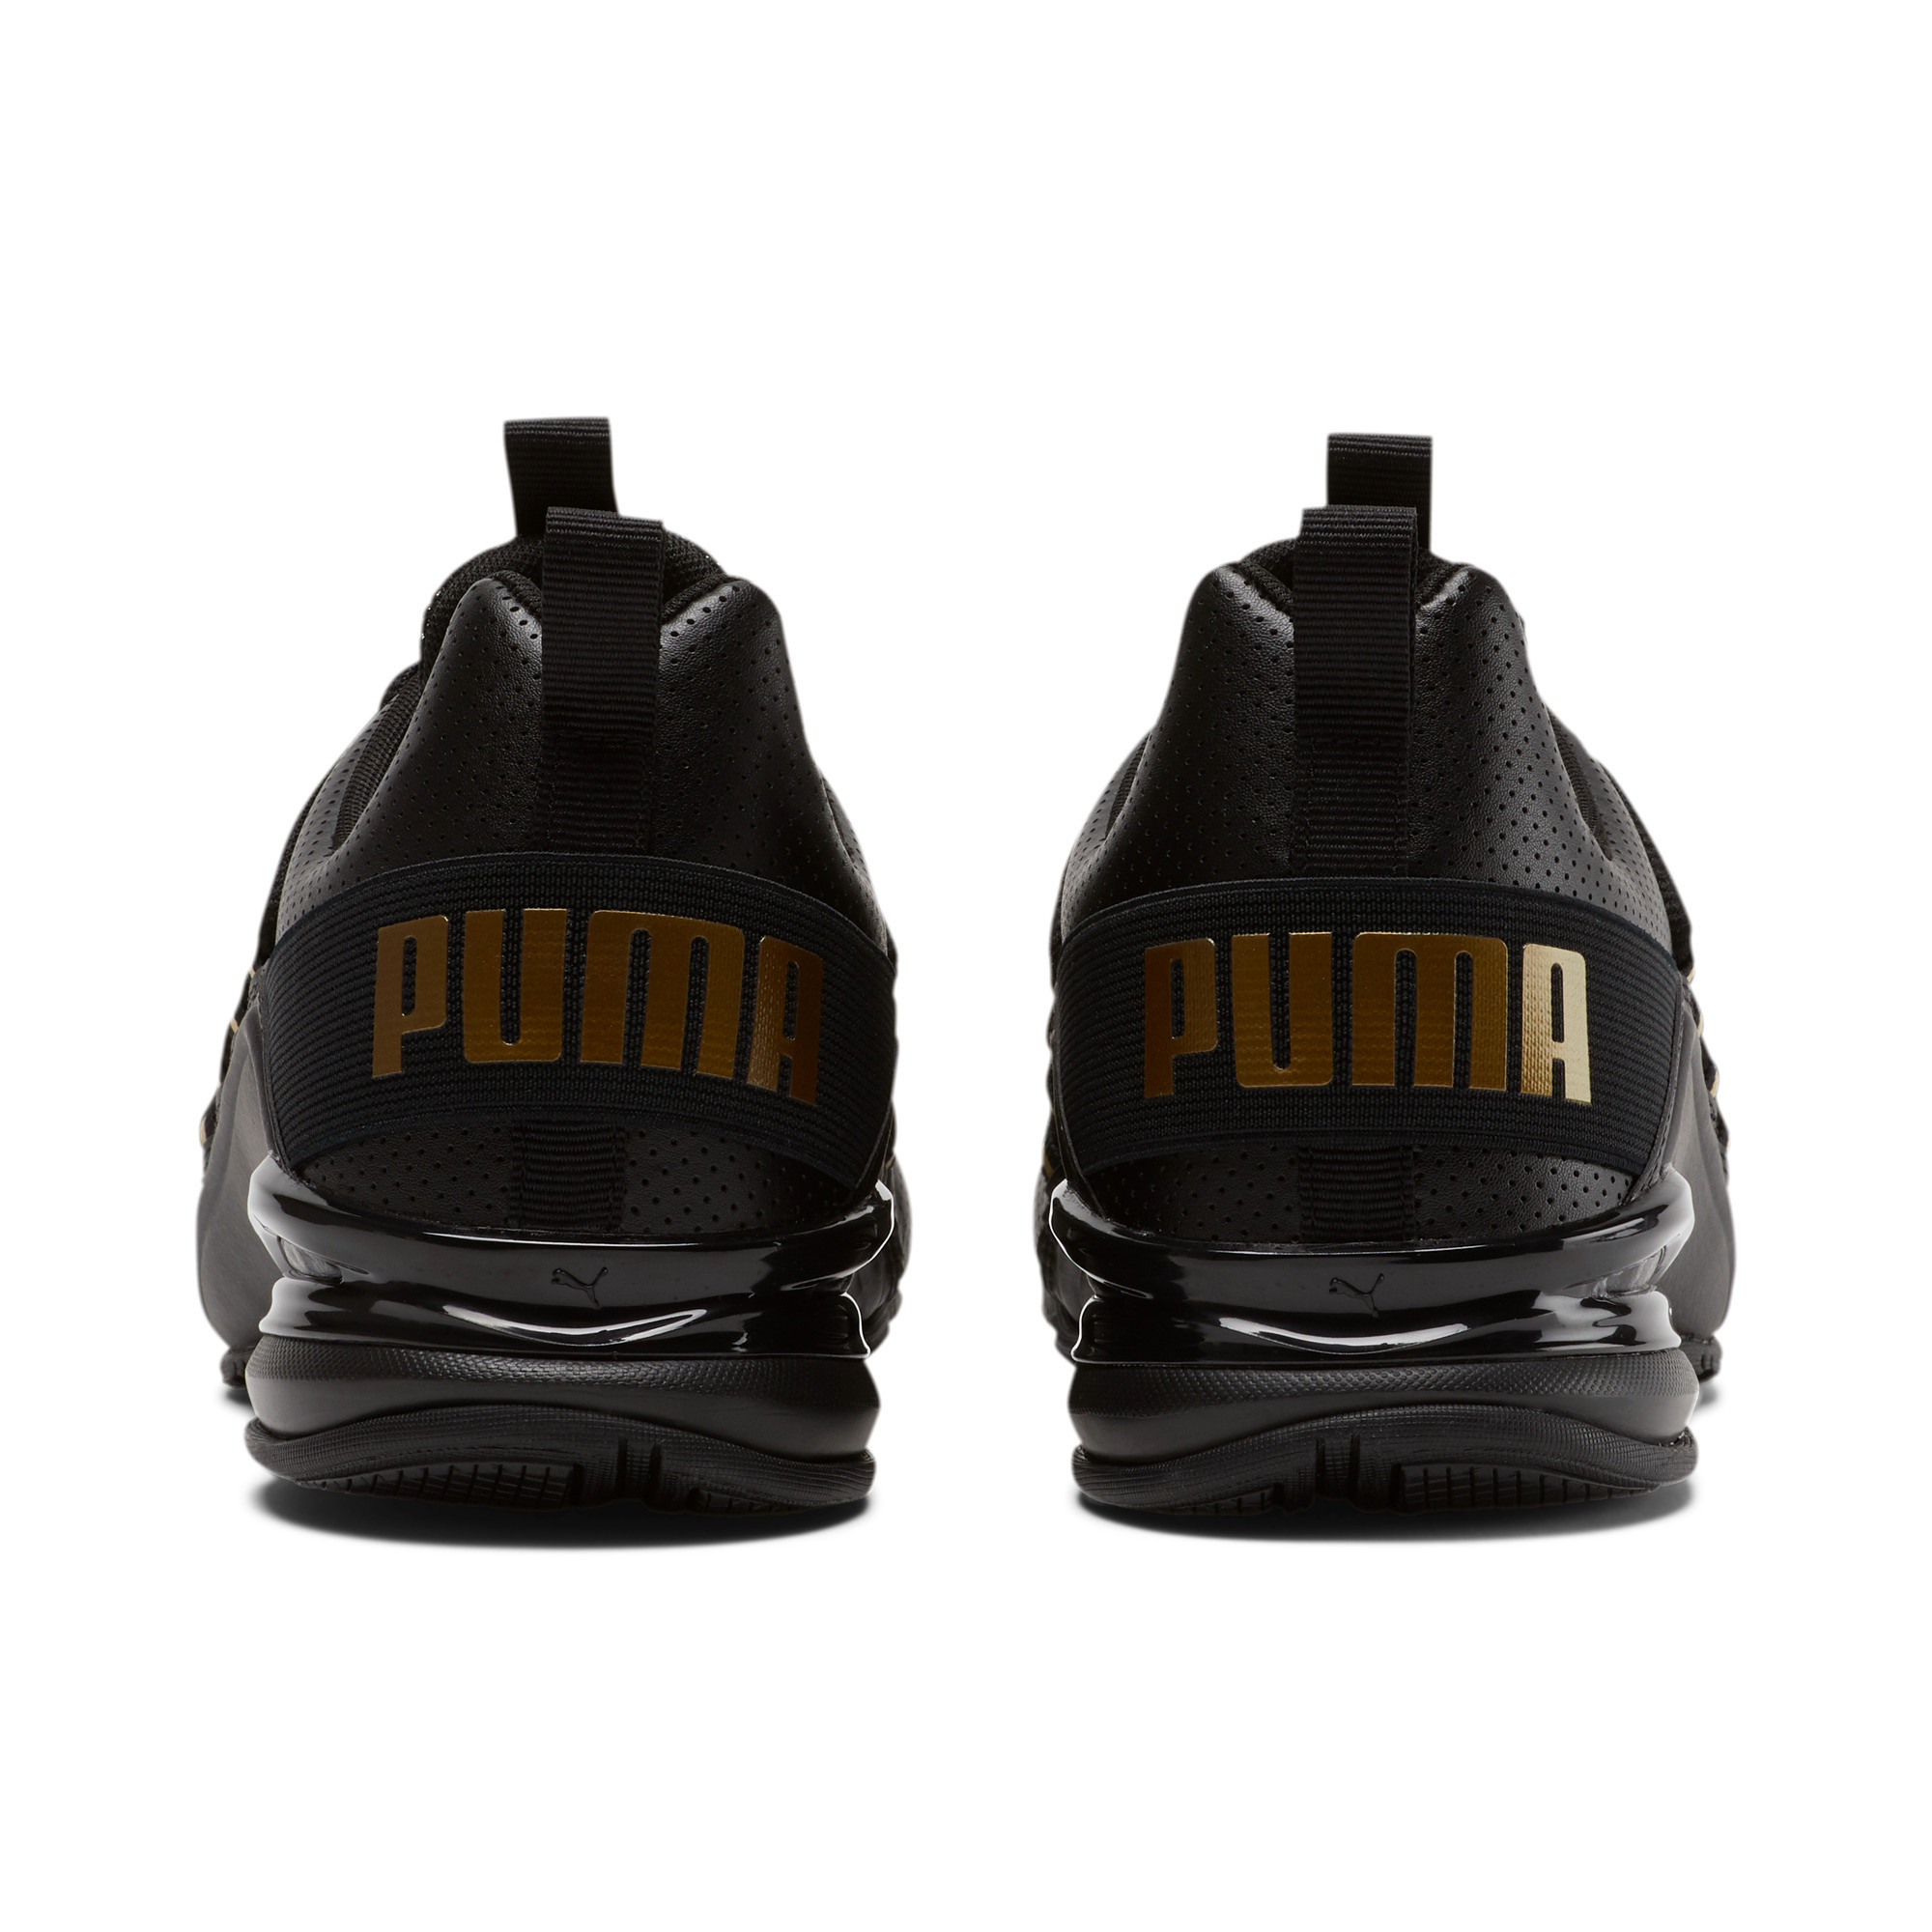 PUMA-Men-039-s-Axelion-Perf-Training-Shoes thumbnail 15